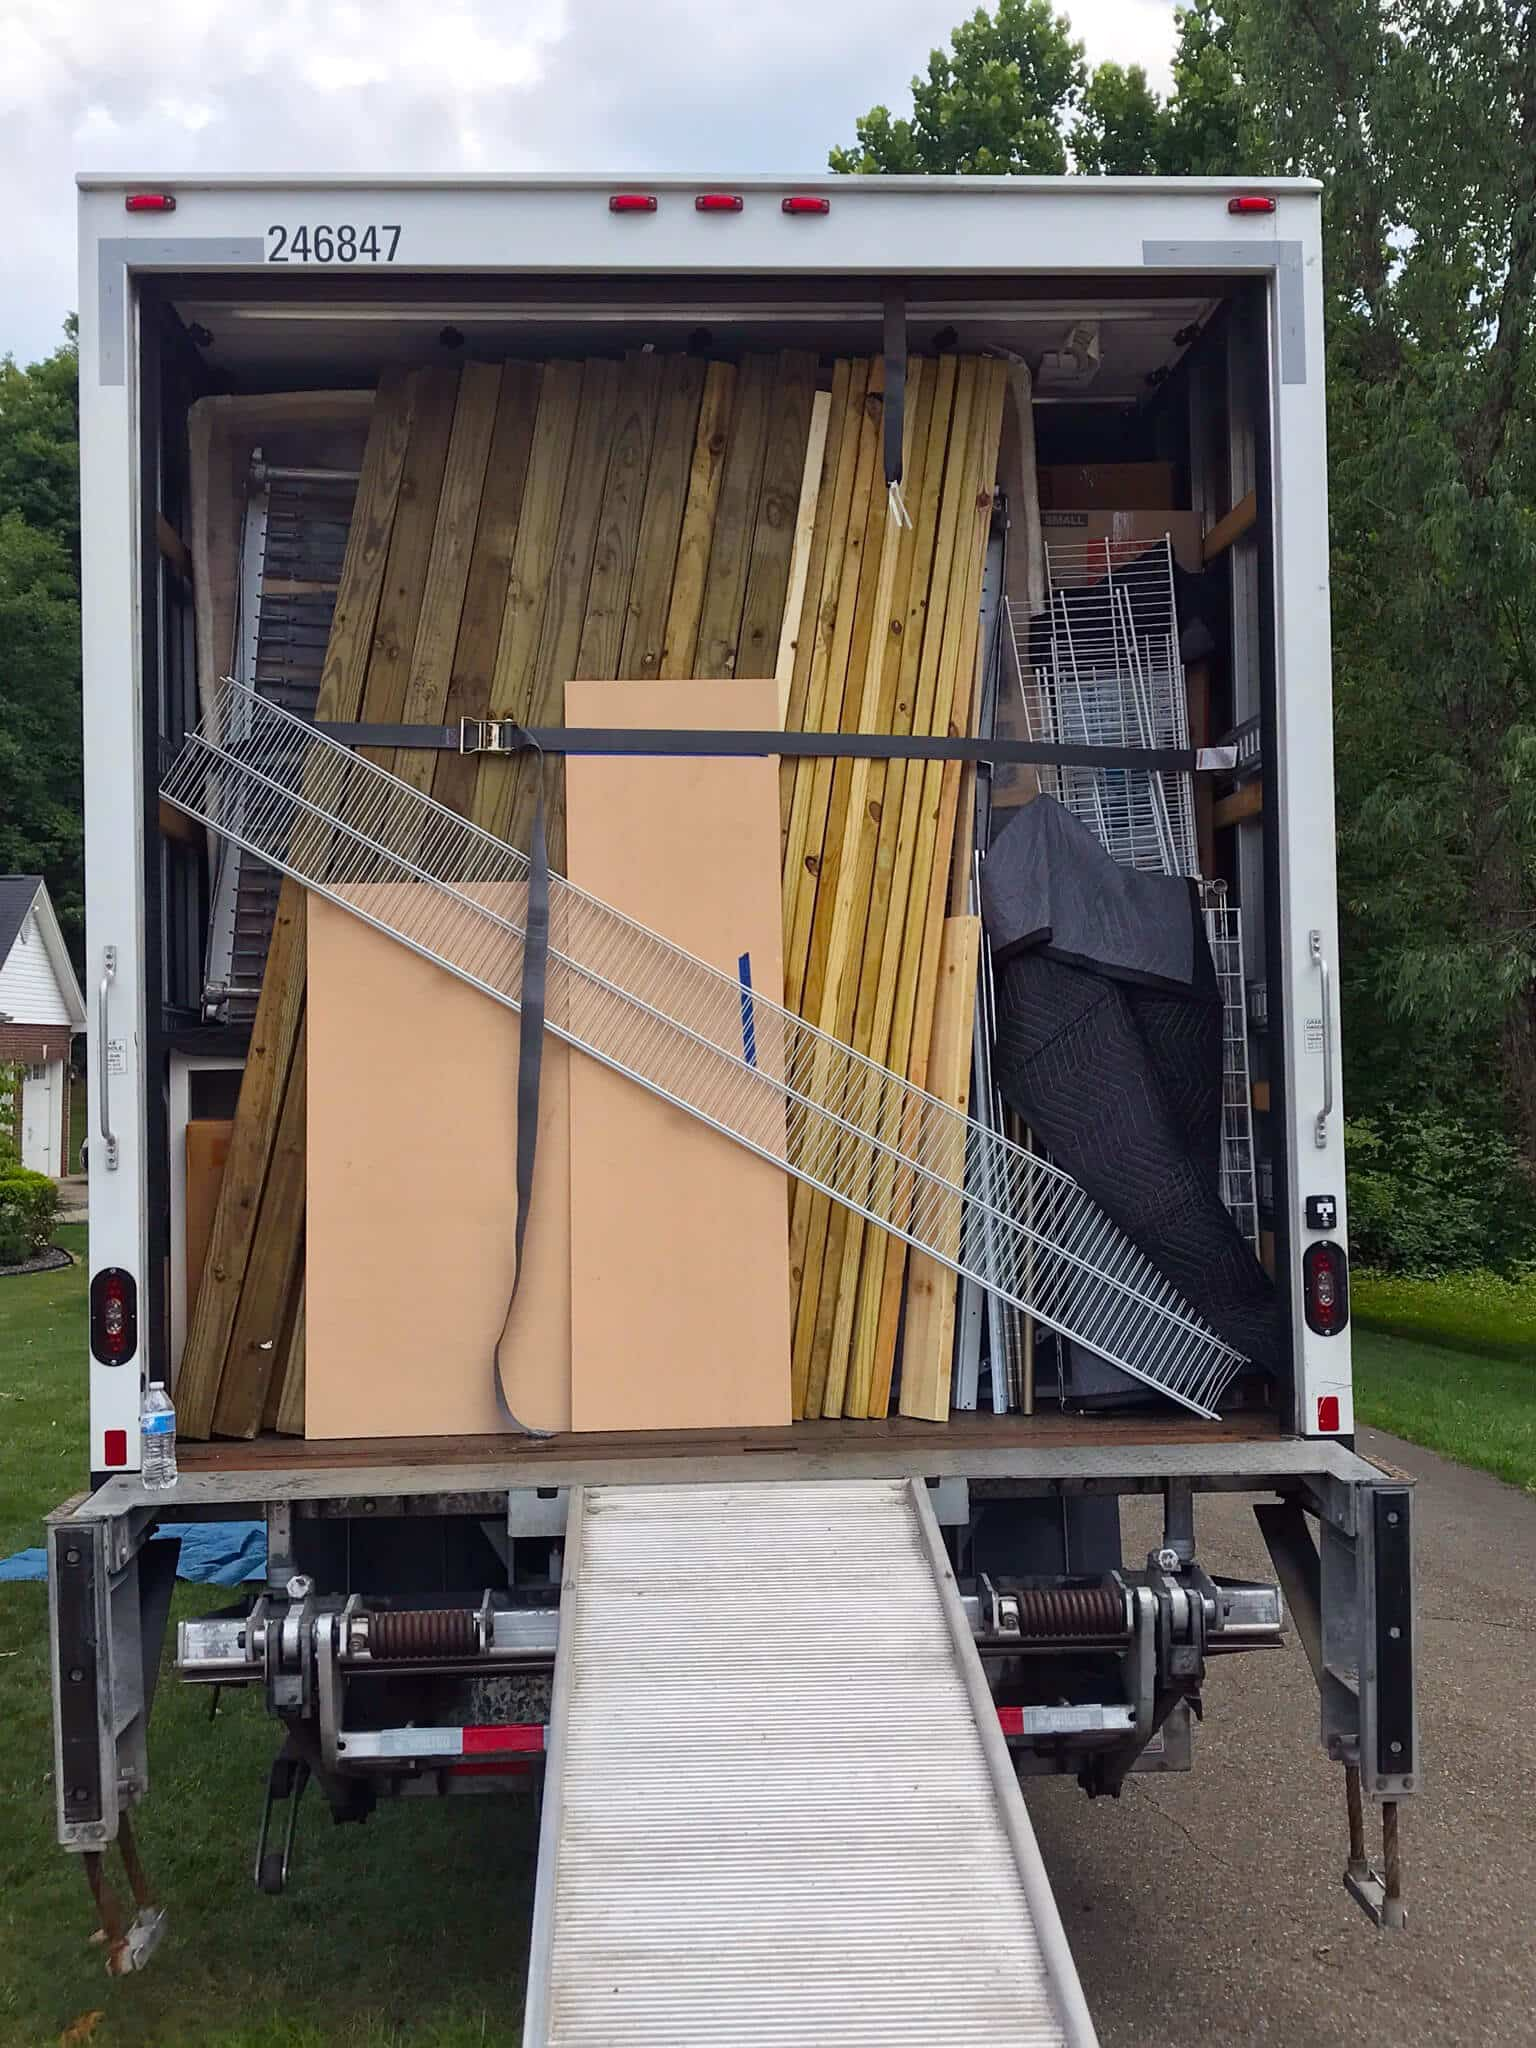 Packed Truck full of wood and sire shelves